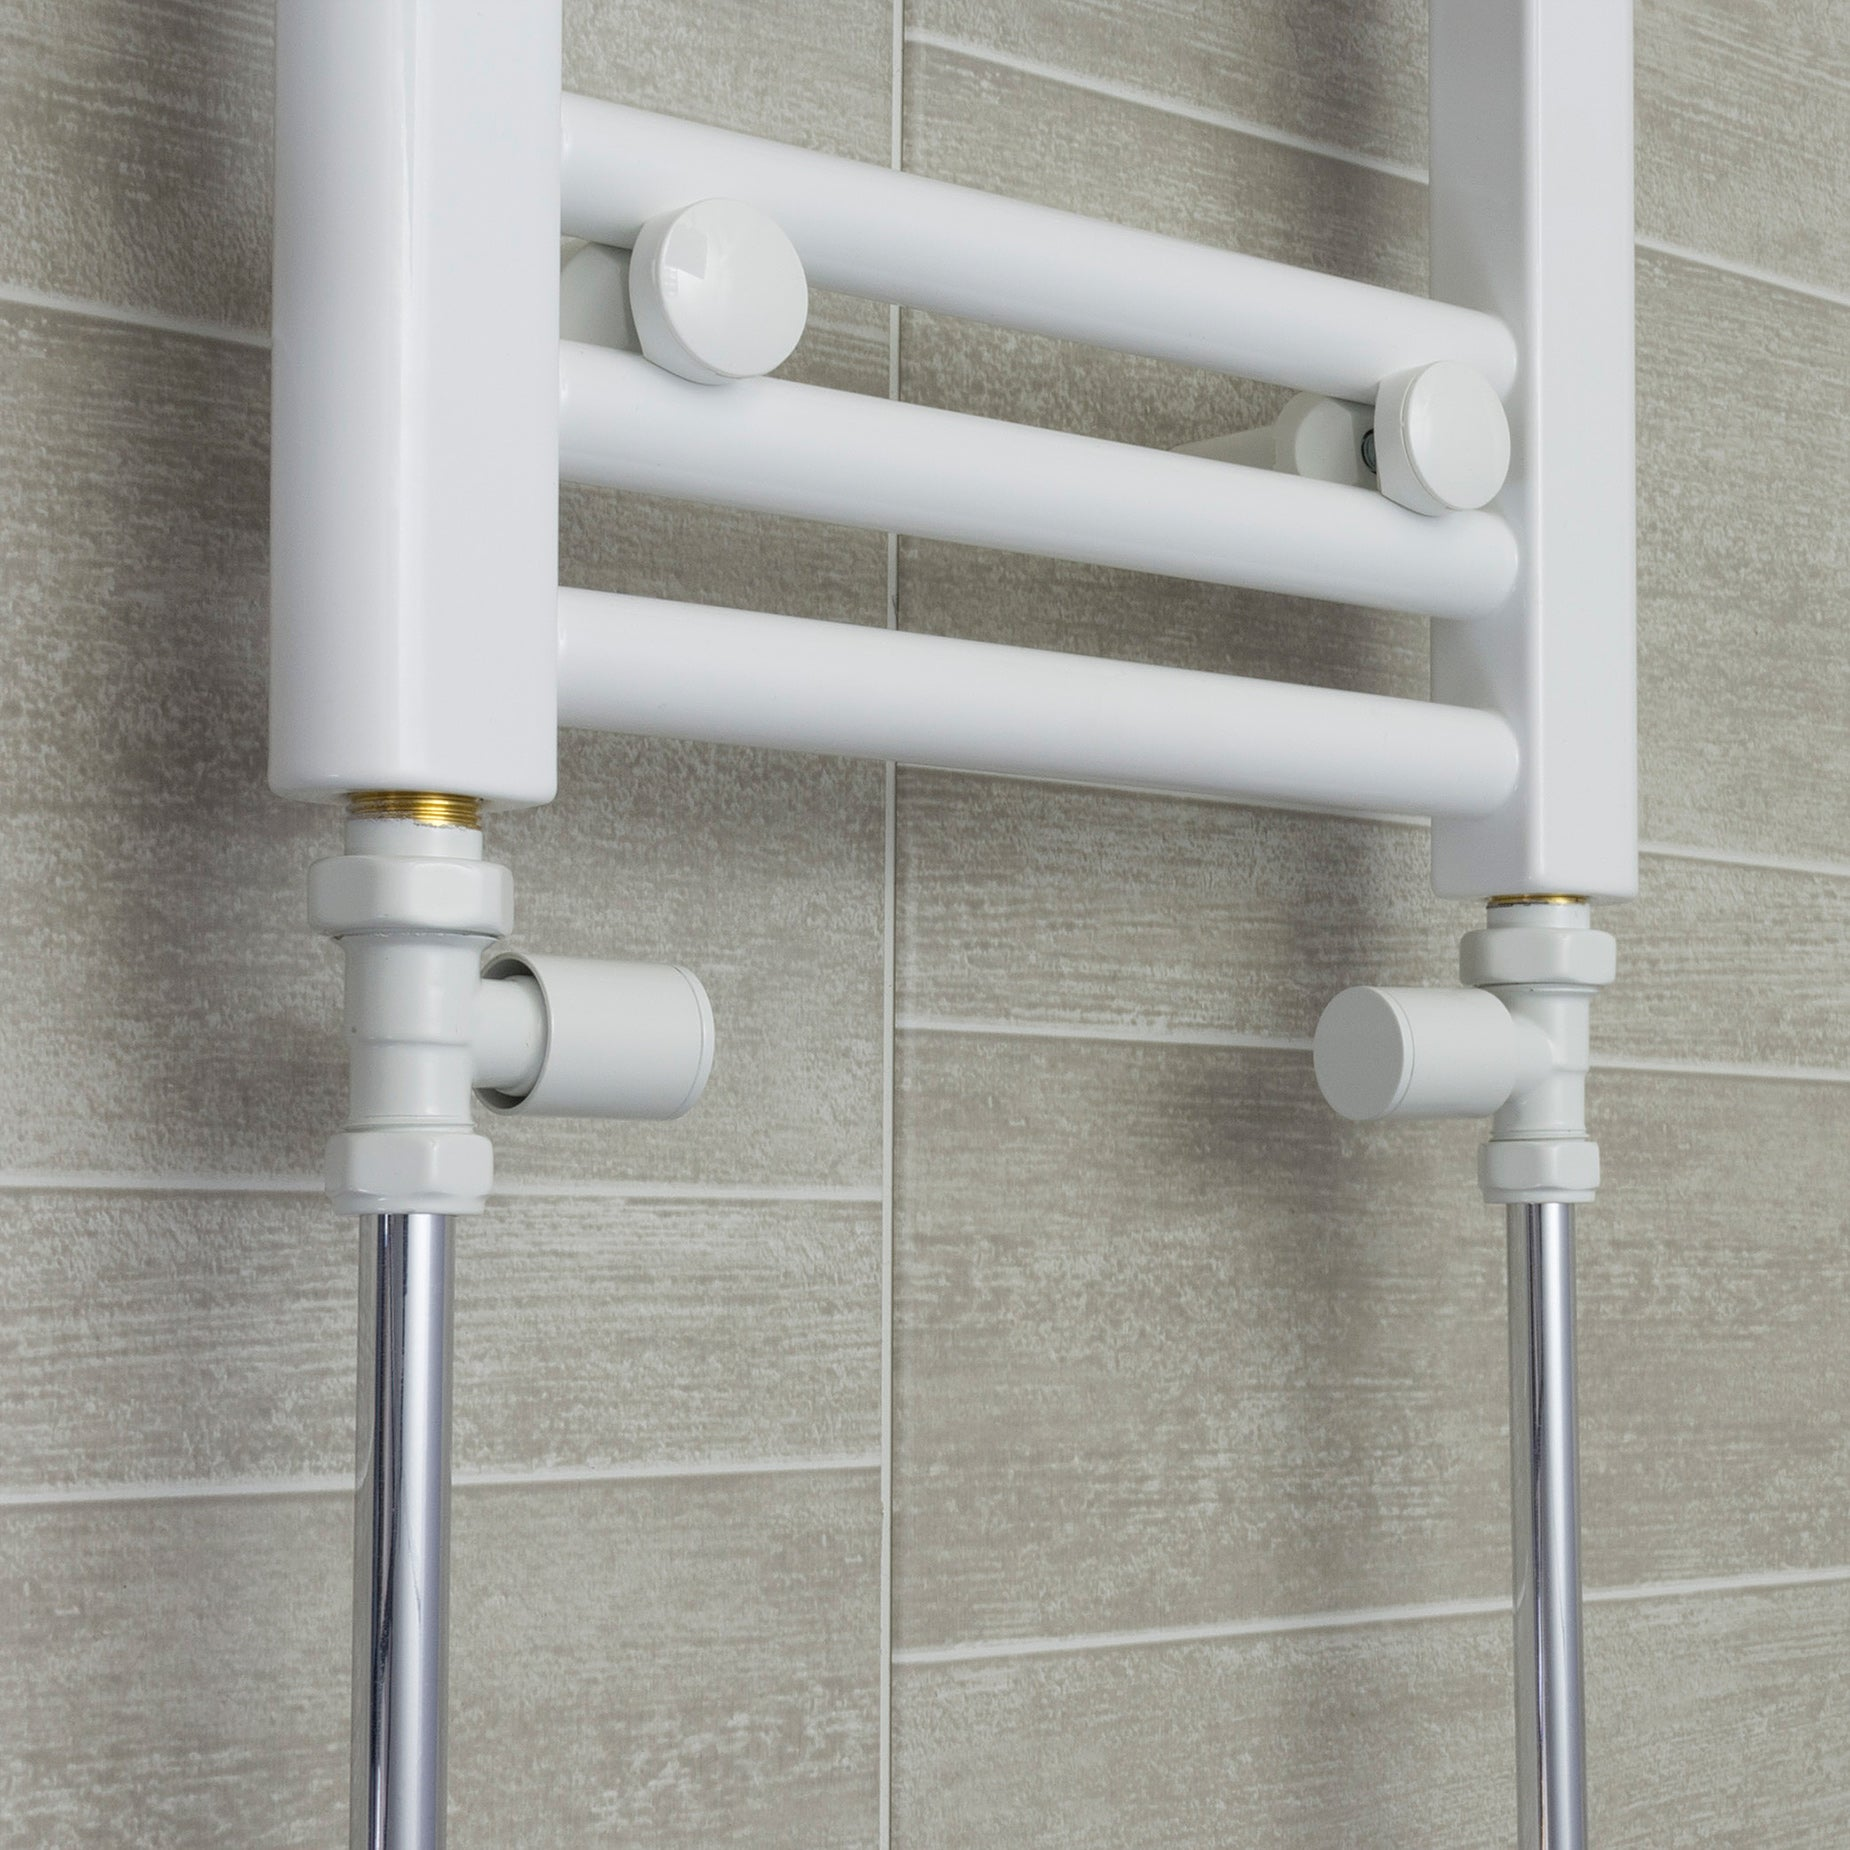 500mm Wide 900mm High Designer Flat White Heated Towel Rail Radiator Gas or Electric